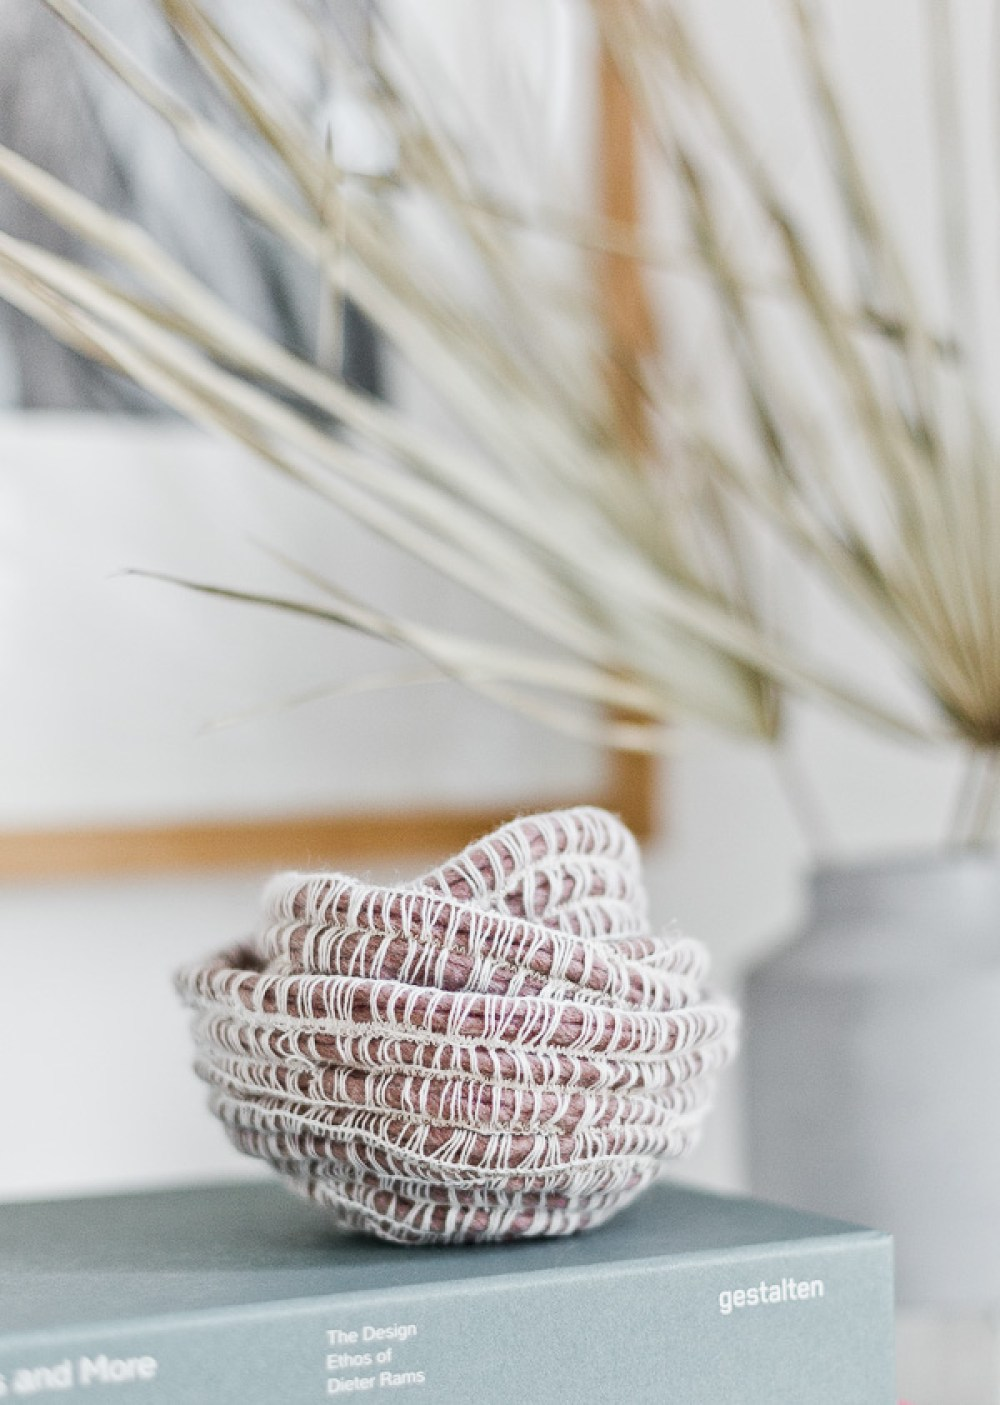 DIY Woven Rope Bowls   15 Stylish DIY Projects for Organizing Your Home #organizing #diy #diyhome #clutterbustingtips